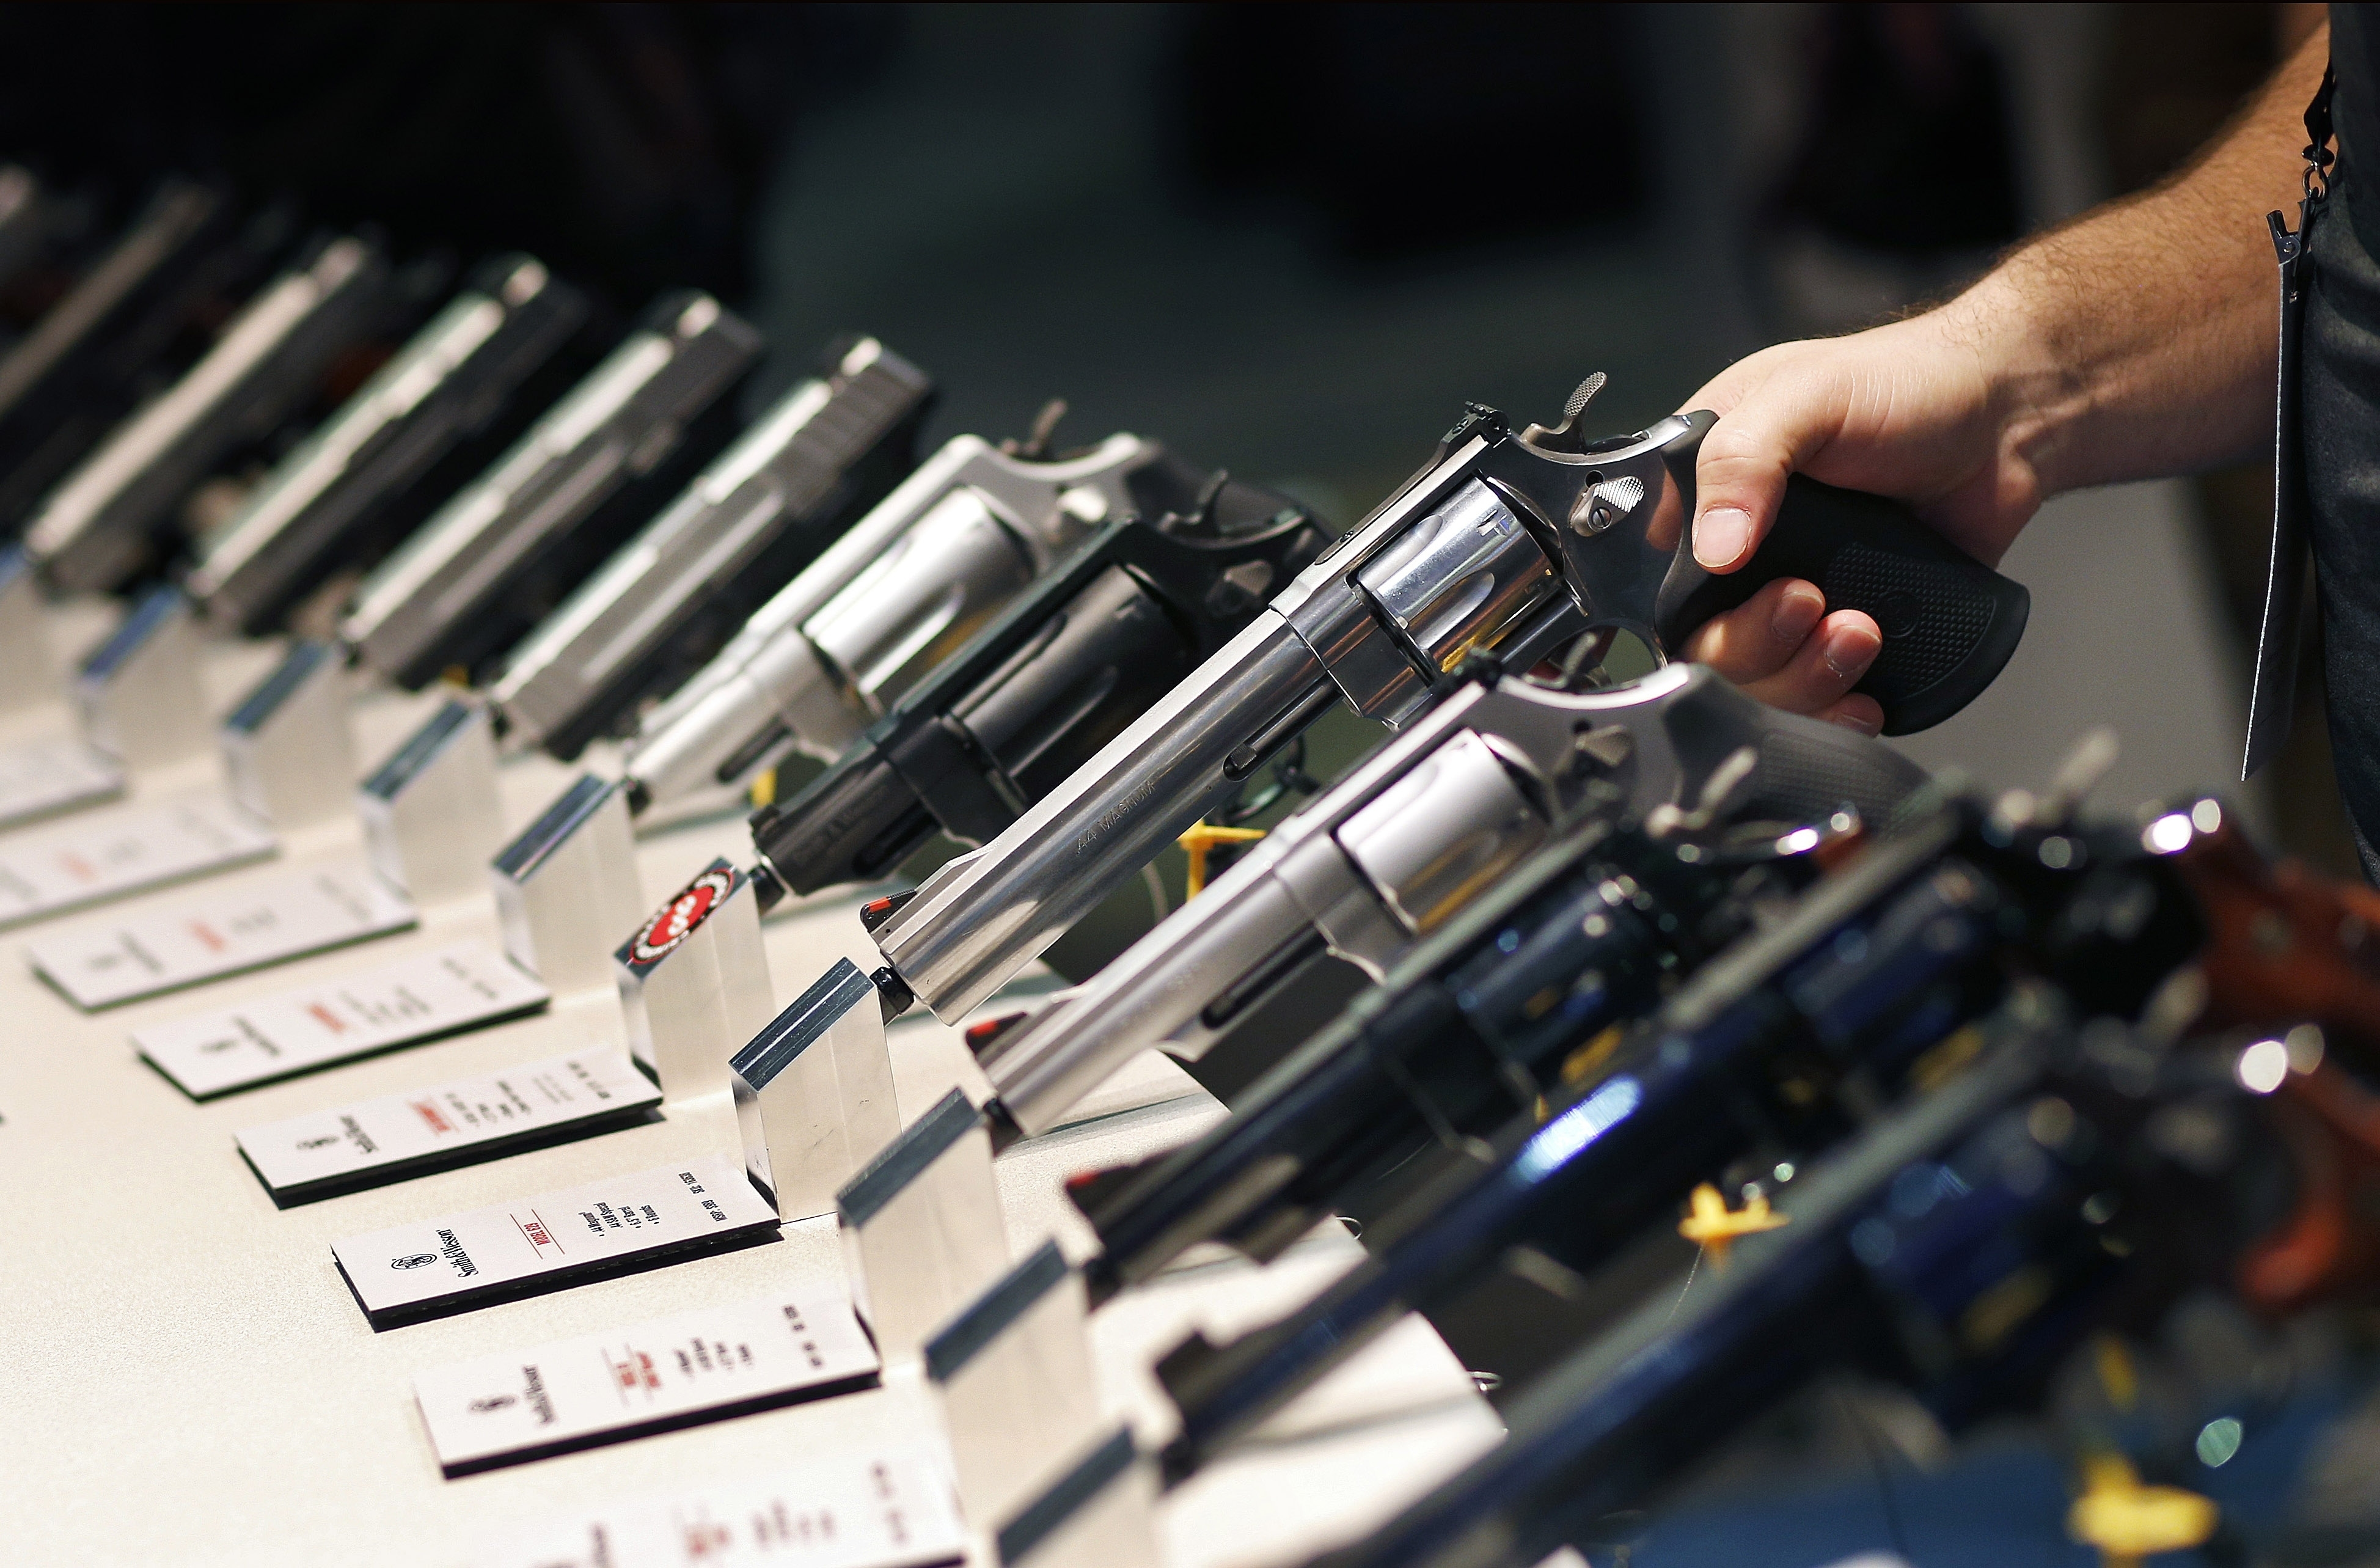 States with fewer restrictive gun laws experience more mass shootings, study finds